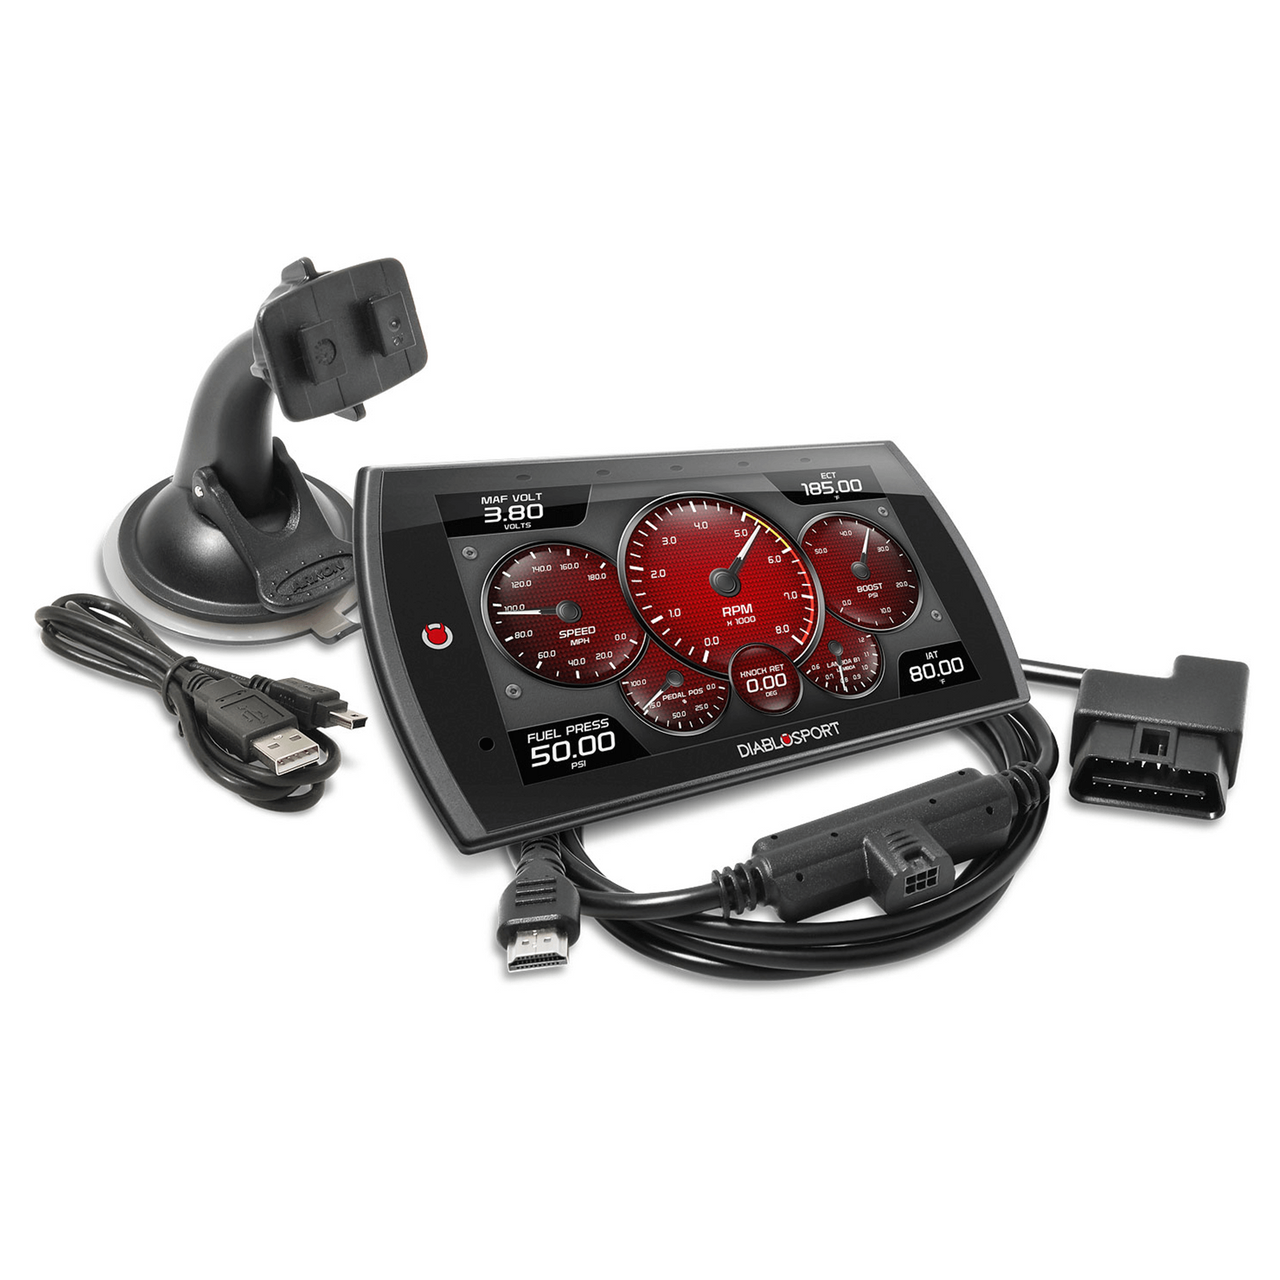 NEW DIABLOSPORT TRINITY 2 MX IN-CAB TUNER,COLOR TOUCH SCREEN DISPLAY,GASOLINE,COMPATIBLE WITH 1999-2020 CHEVY CAMARO /& 1999-2018 CORVETTE